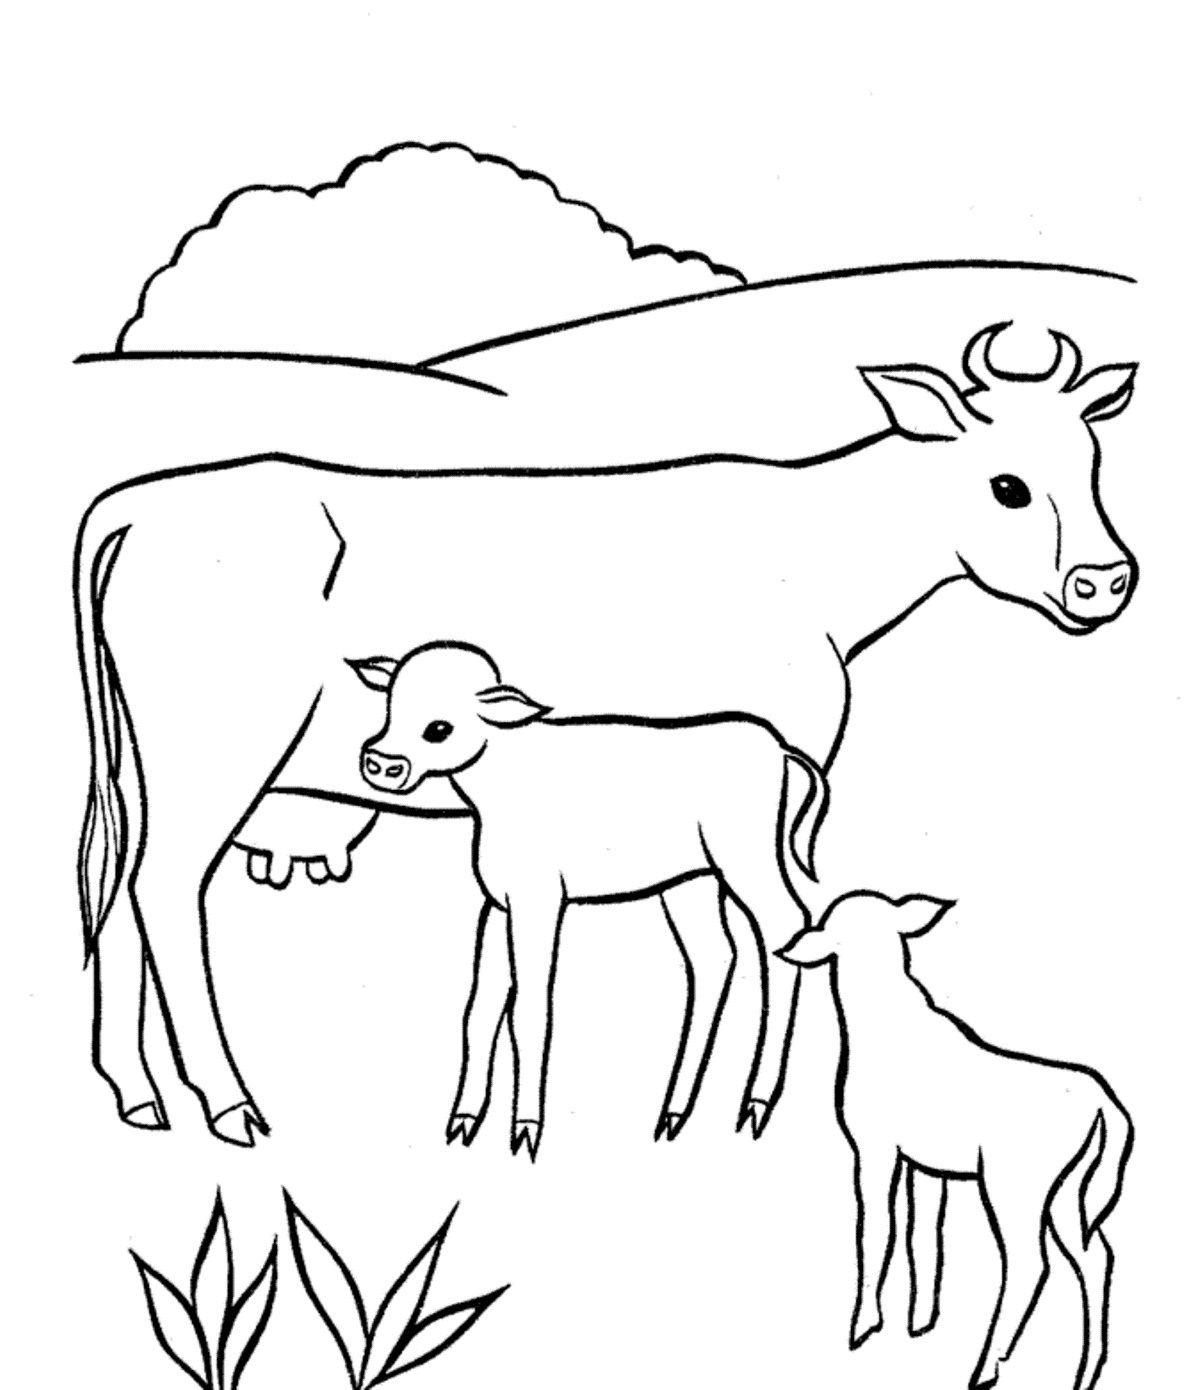 Http Coloringstar Com Best Baby Cow Coloring Pages With Mom 4223 Farm Animal Coloring Pages Animal Coloring Pages Cow Coloring Pages